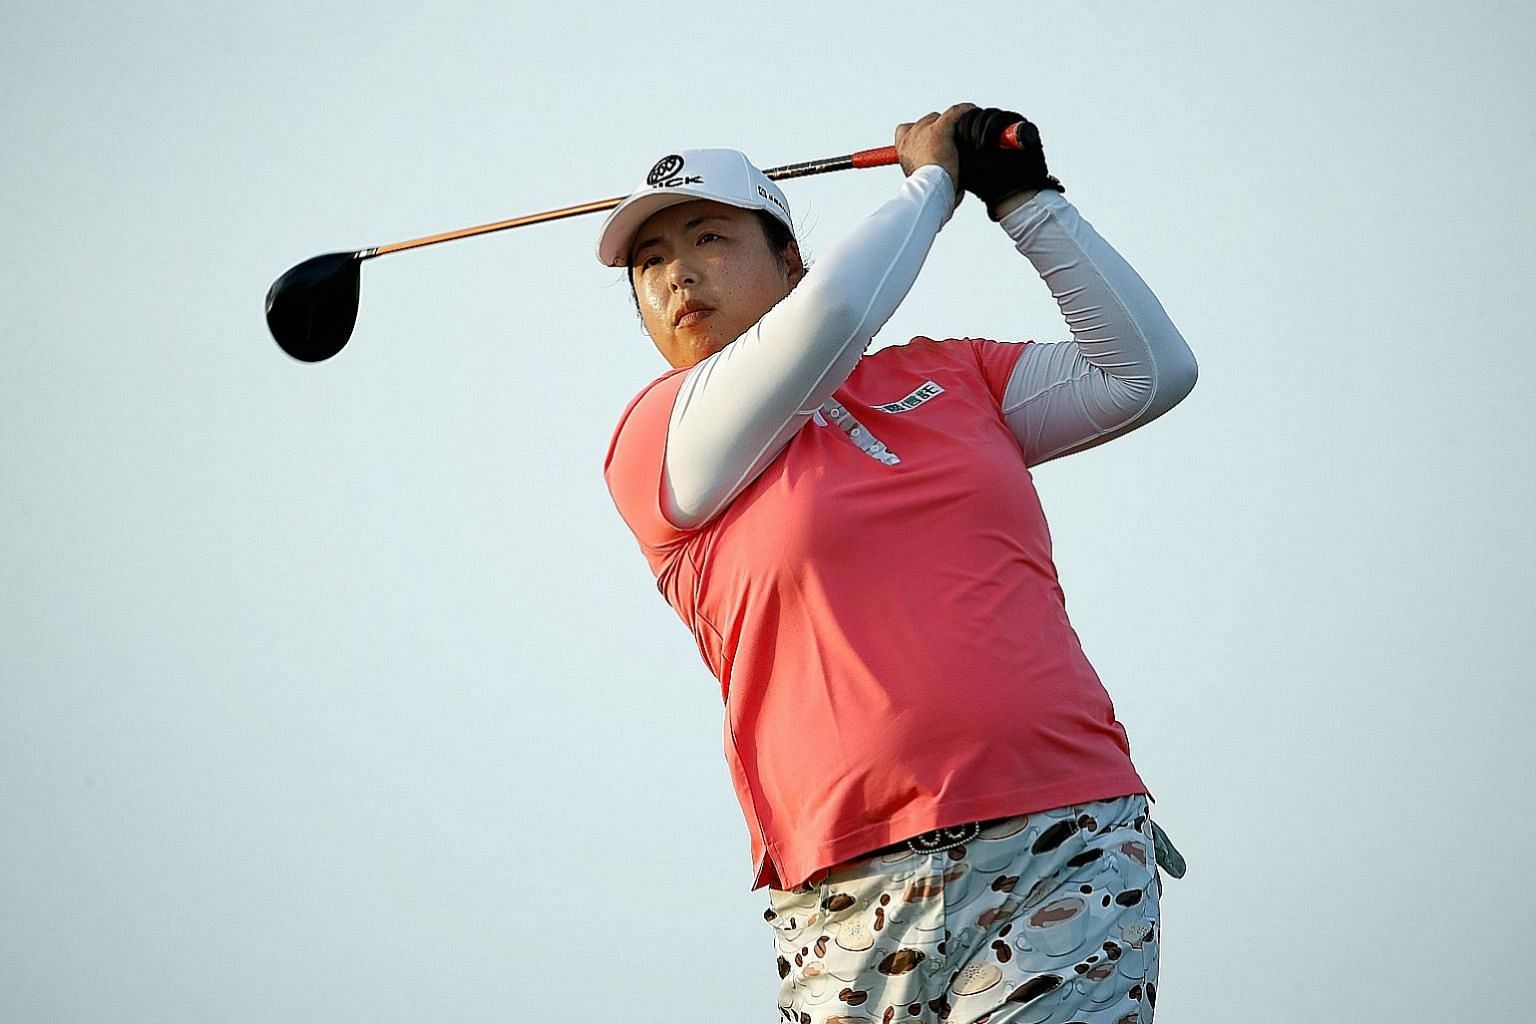 Feng Shanshan is off to a fine start to the LPGA season, ending joint third in Bahamas last week. Her best result in the HSBC event is tied for second in 2012.